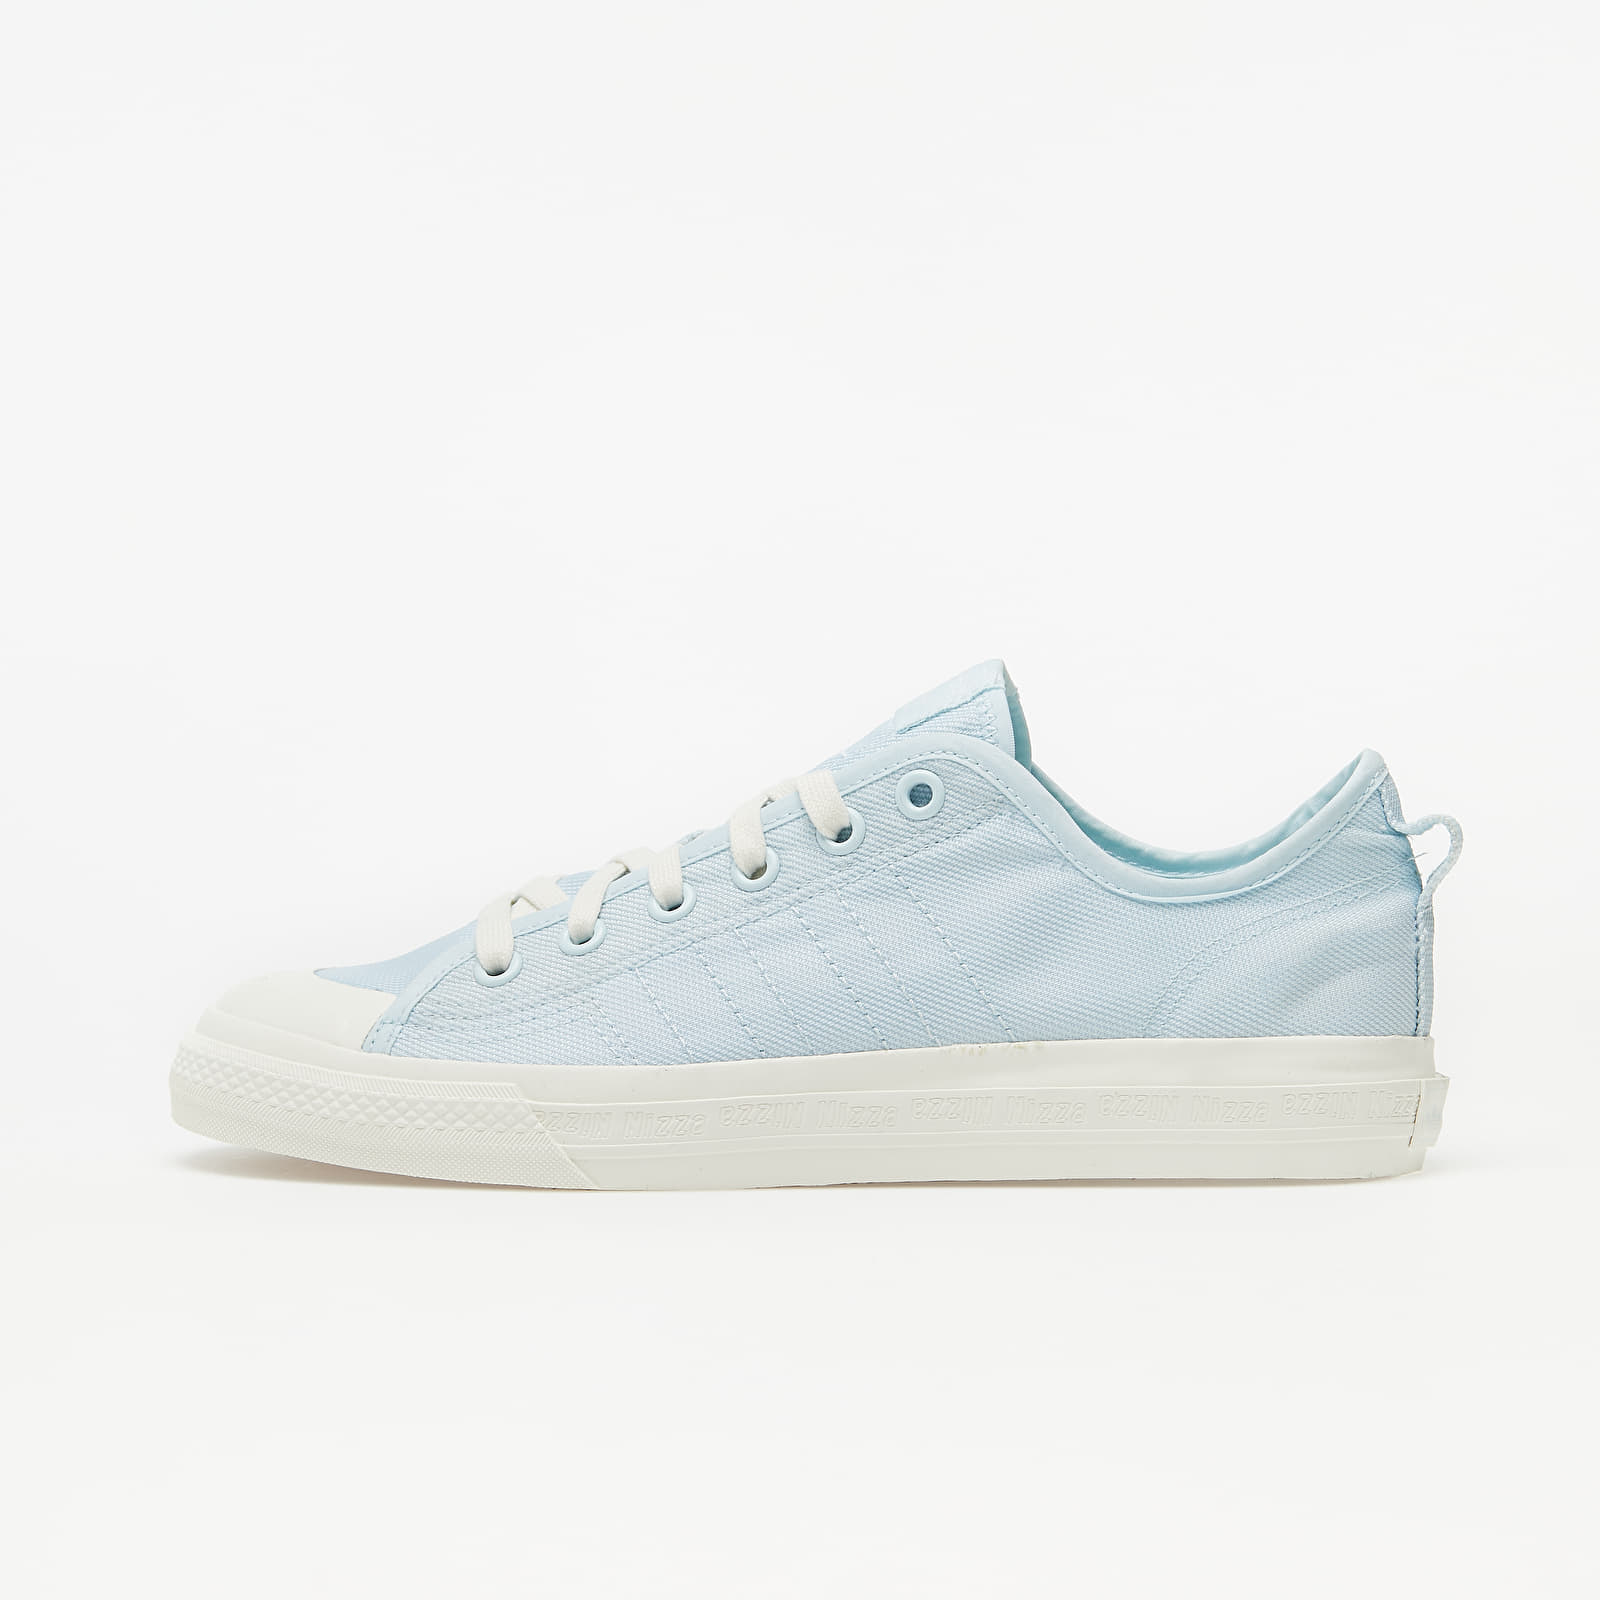 adidas Nizza Rf Sky Tint/ Off White/ Core Brown EUR 42